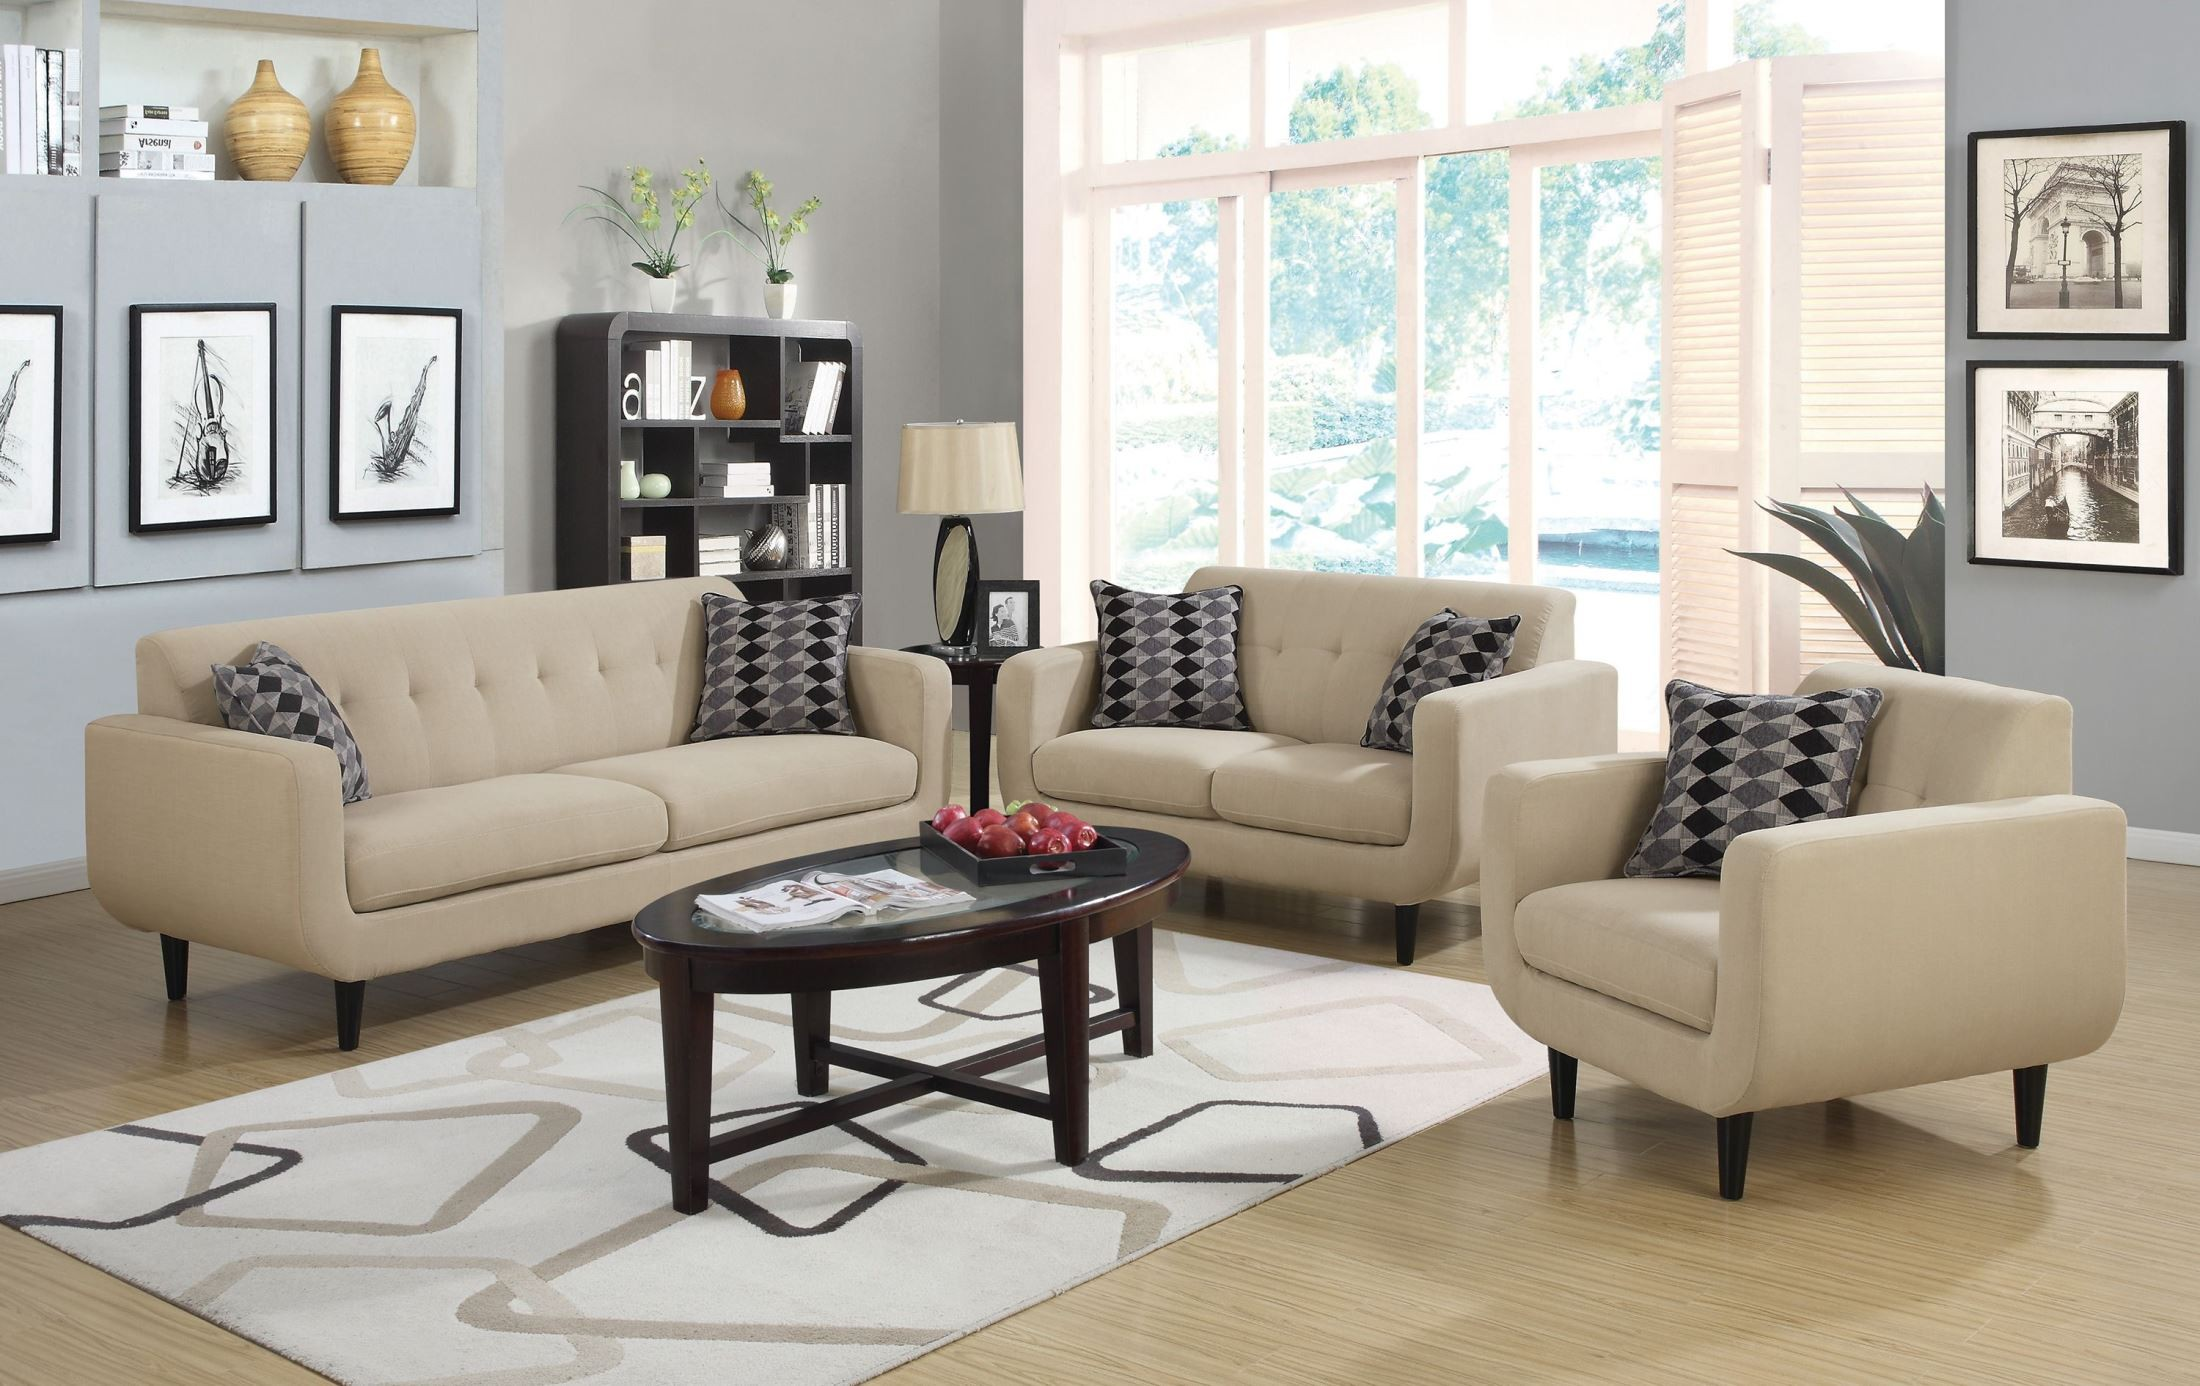 Stansall ivory living room set from coaster 505204 for Modern living room furniture sets